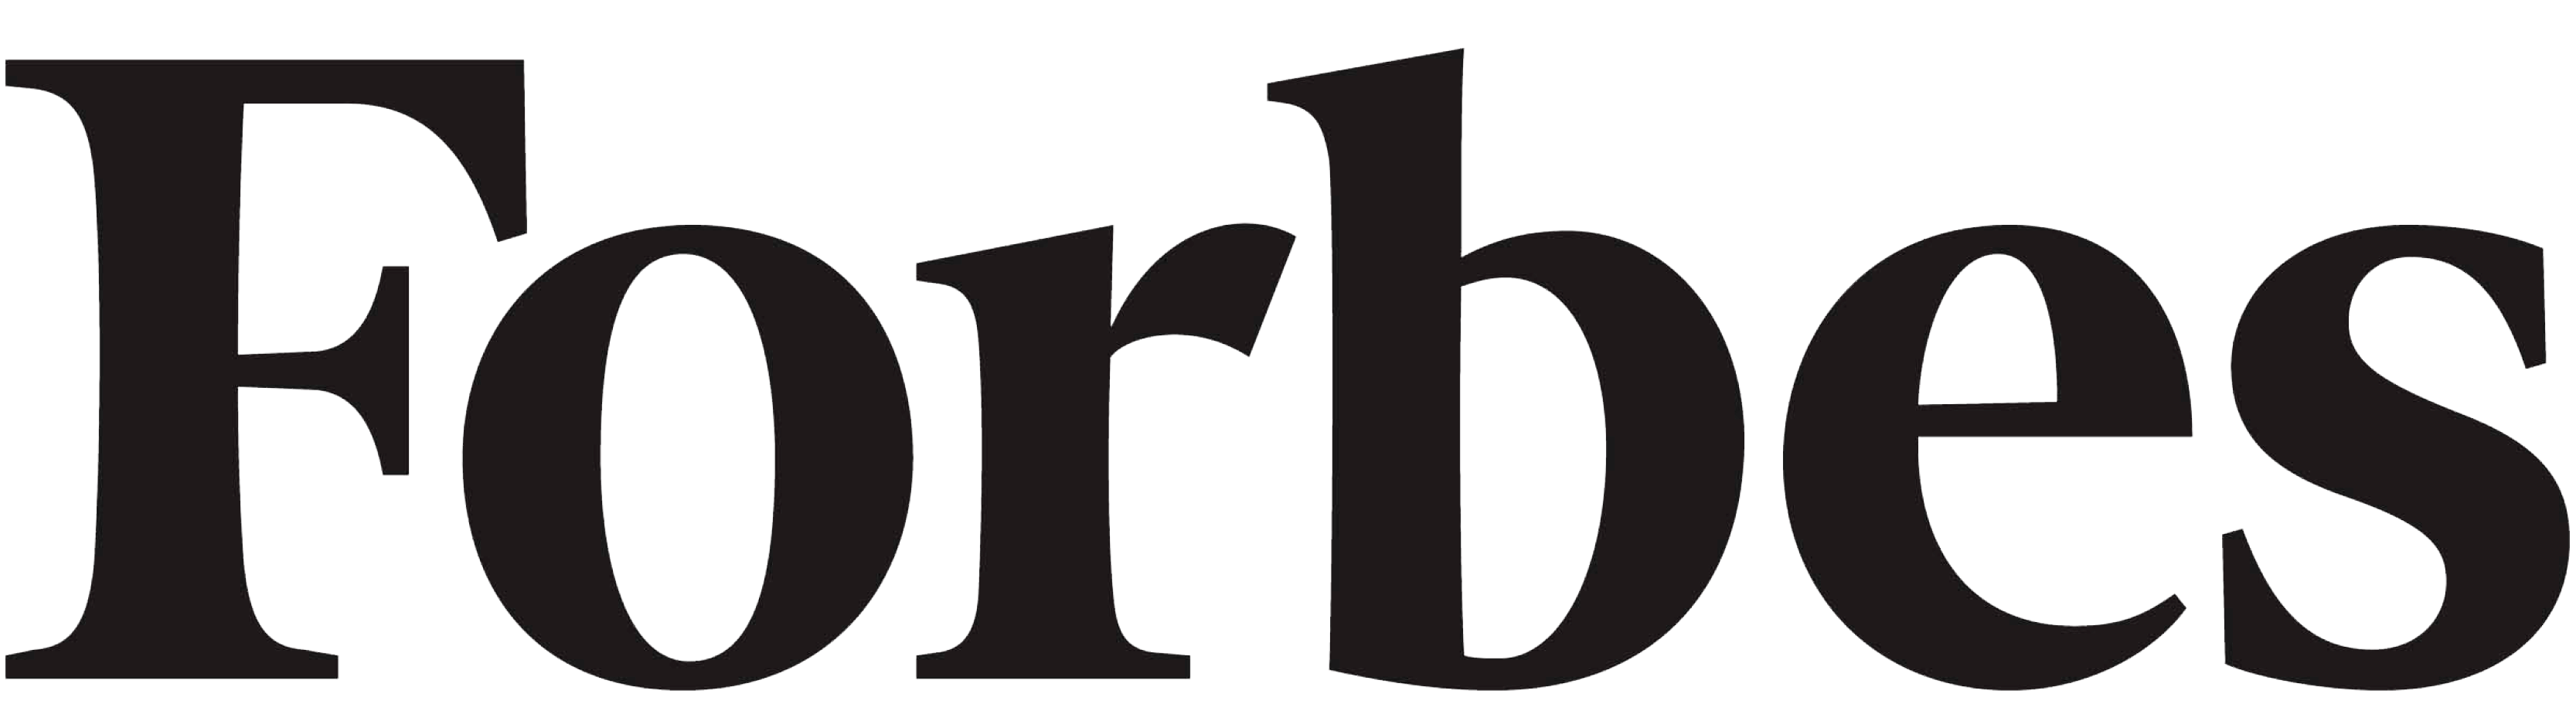 Forbes Black Logo Png 03003 - Forbes, Transparent background PNG HD thumbnail